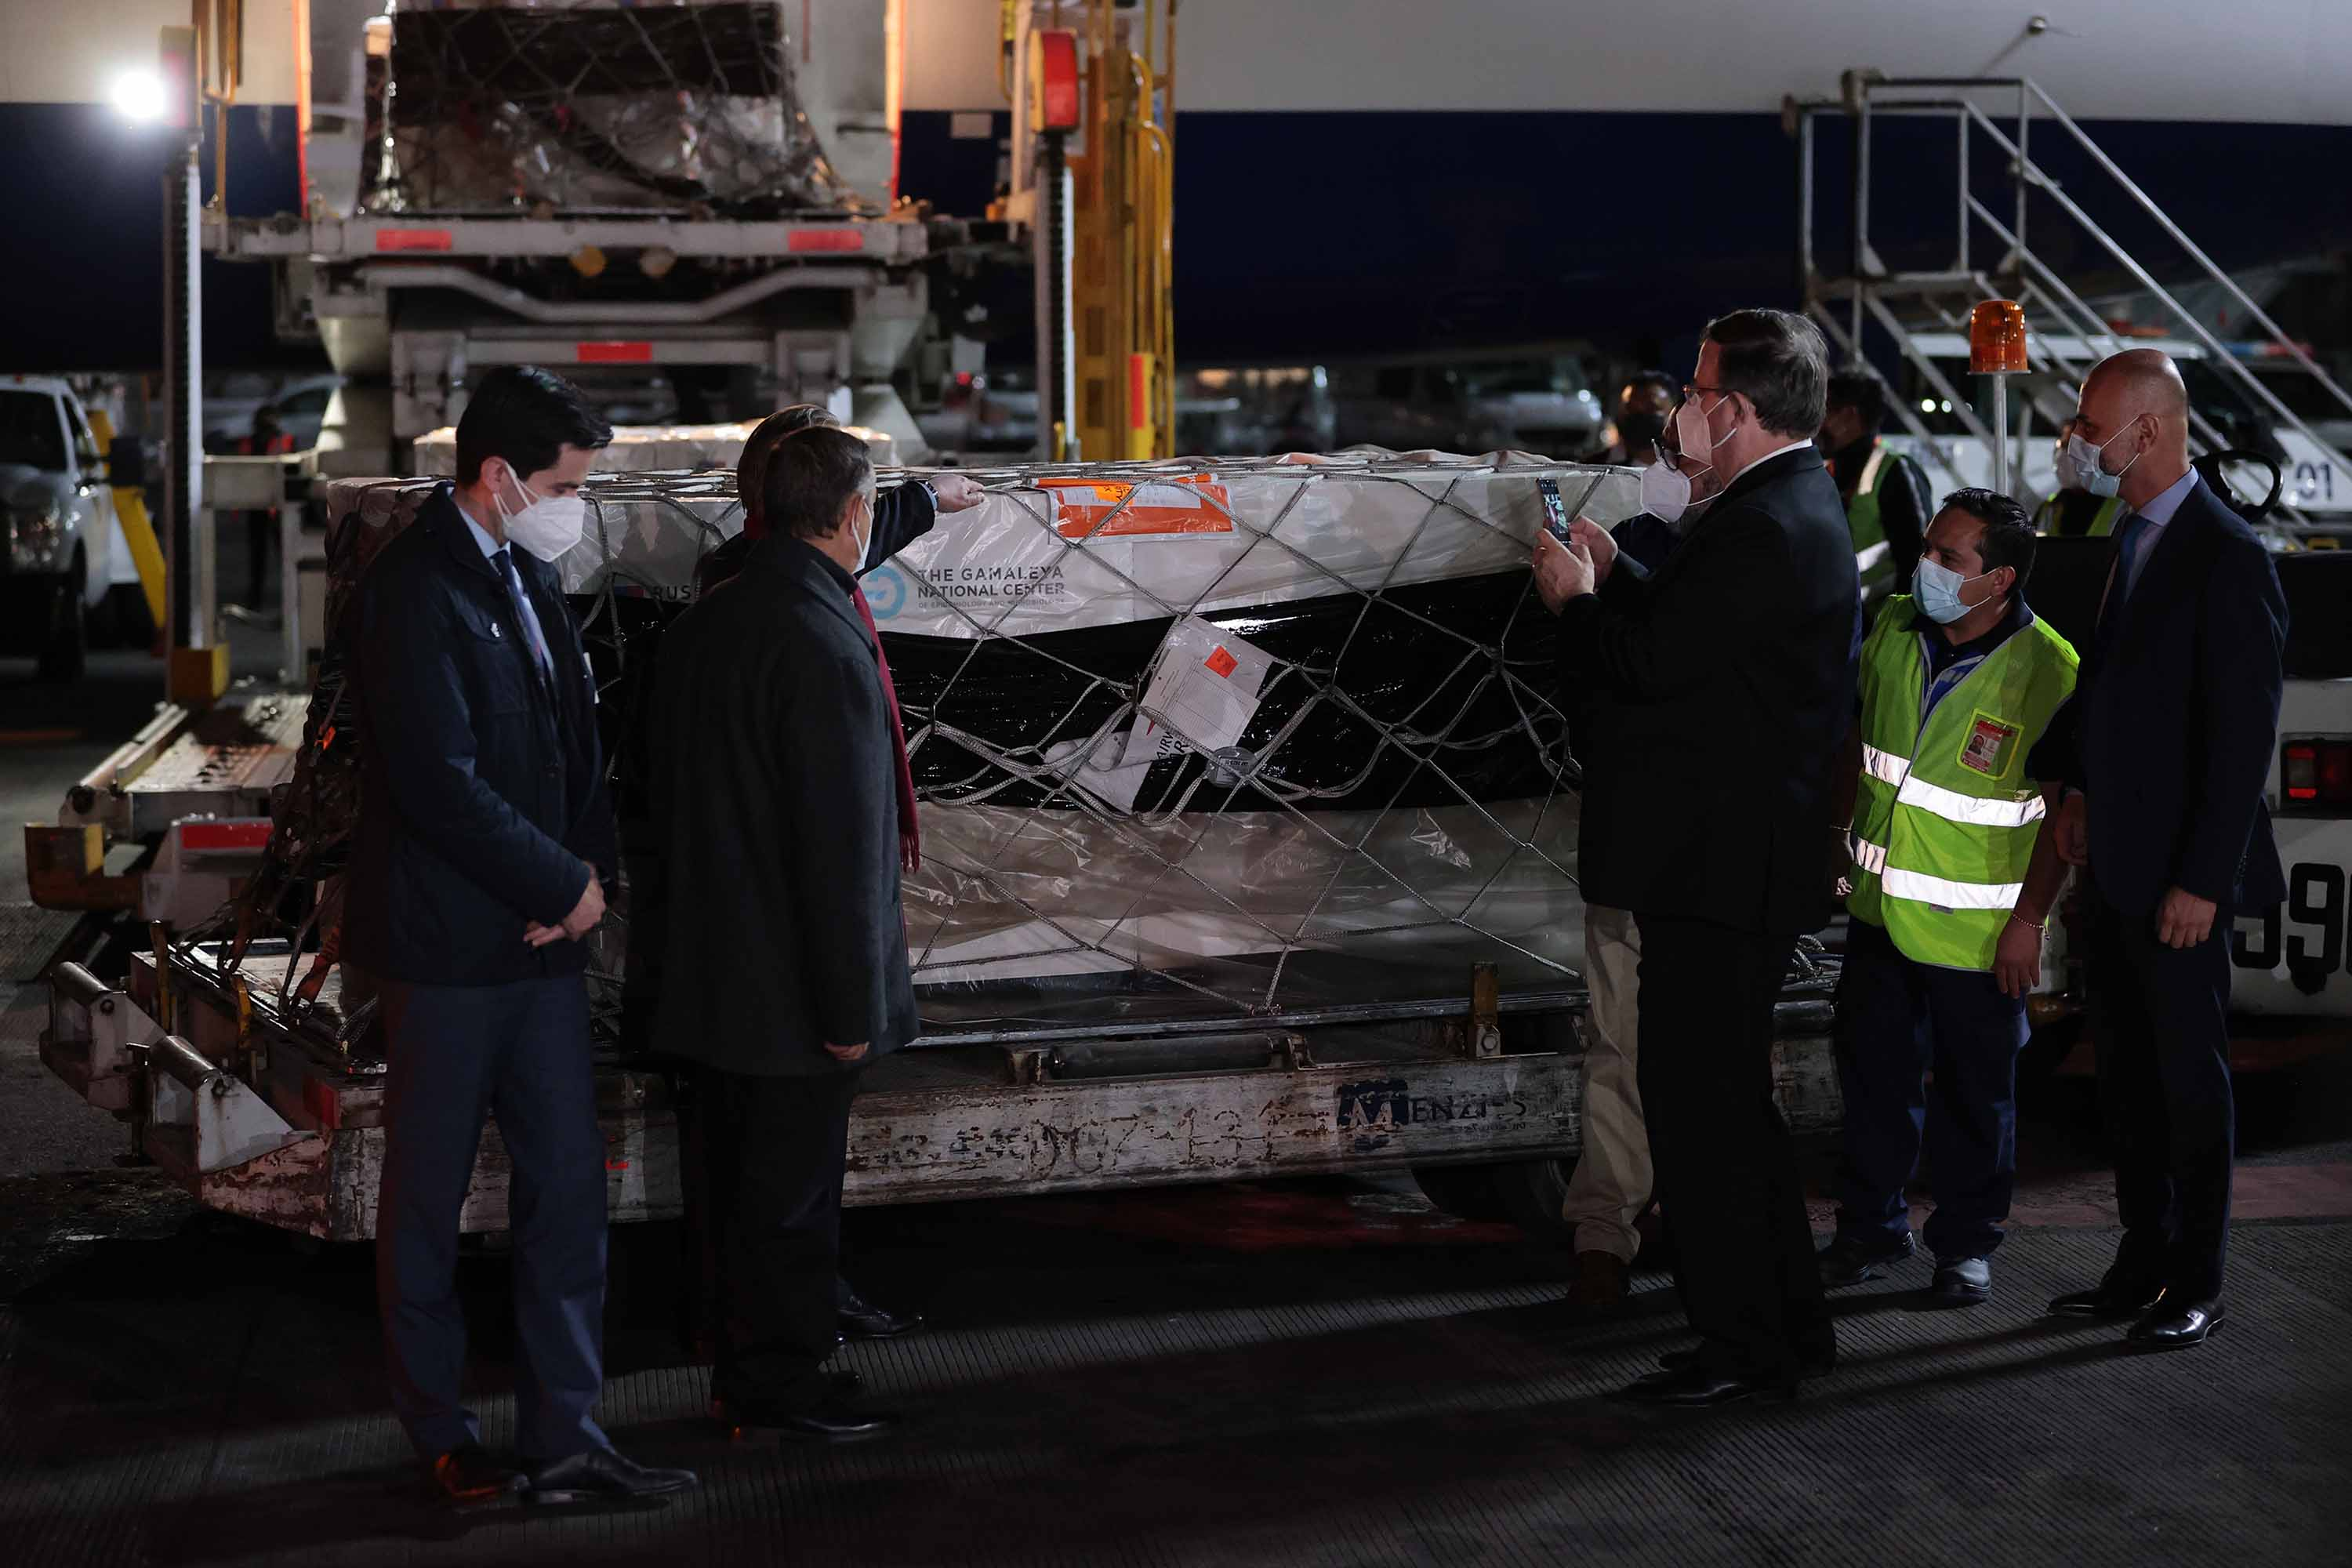 Viktor Koronelli, Russian ambassador in Mexico, and Marcelo Ebrard, Mexico's secretary of Foreign Affairs, with a container carrying the Sputnik V vaccine at Benito Juarez International Airport in Mexico City, on Monday.